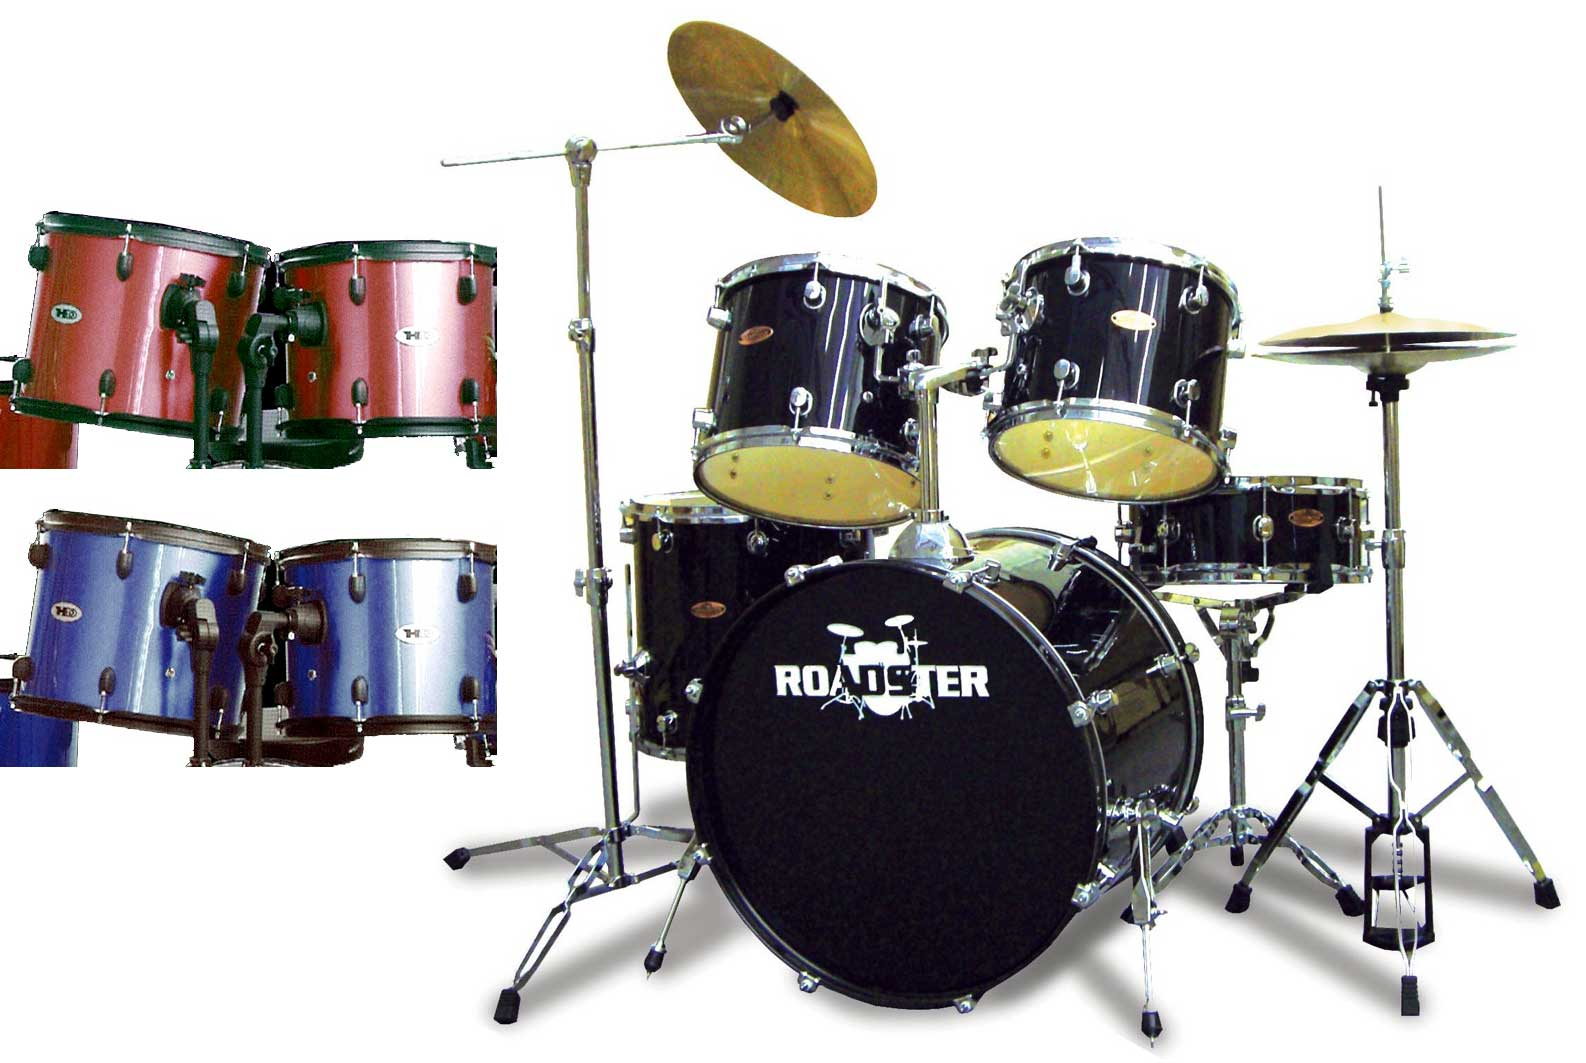 Roadster Highway - Batteria Completa